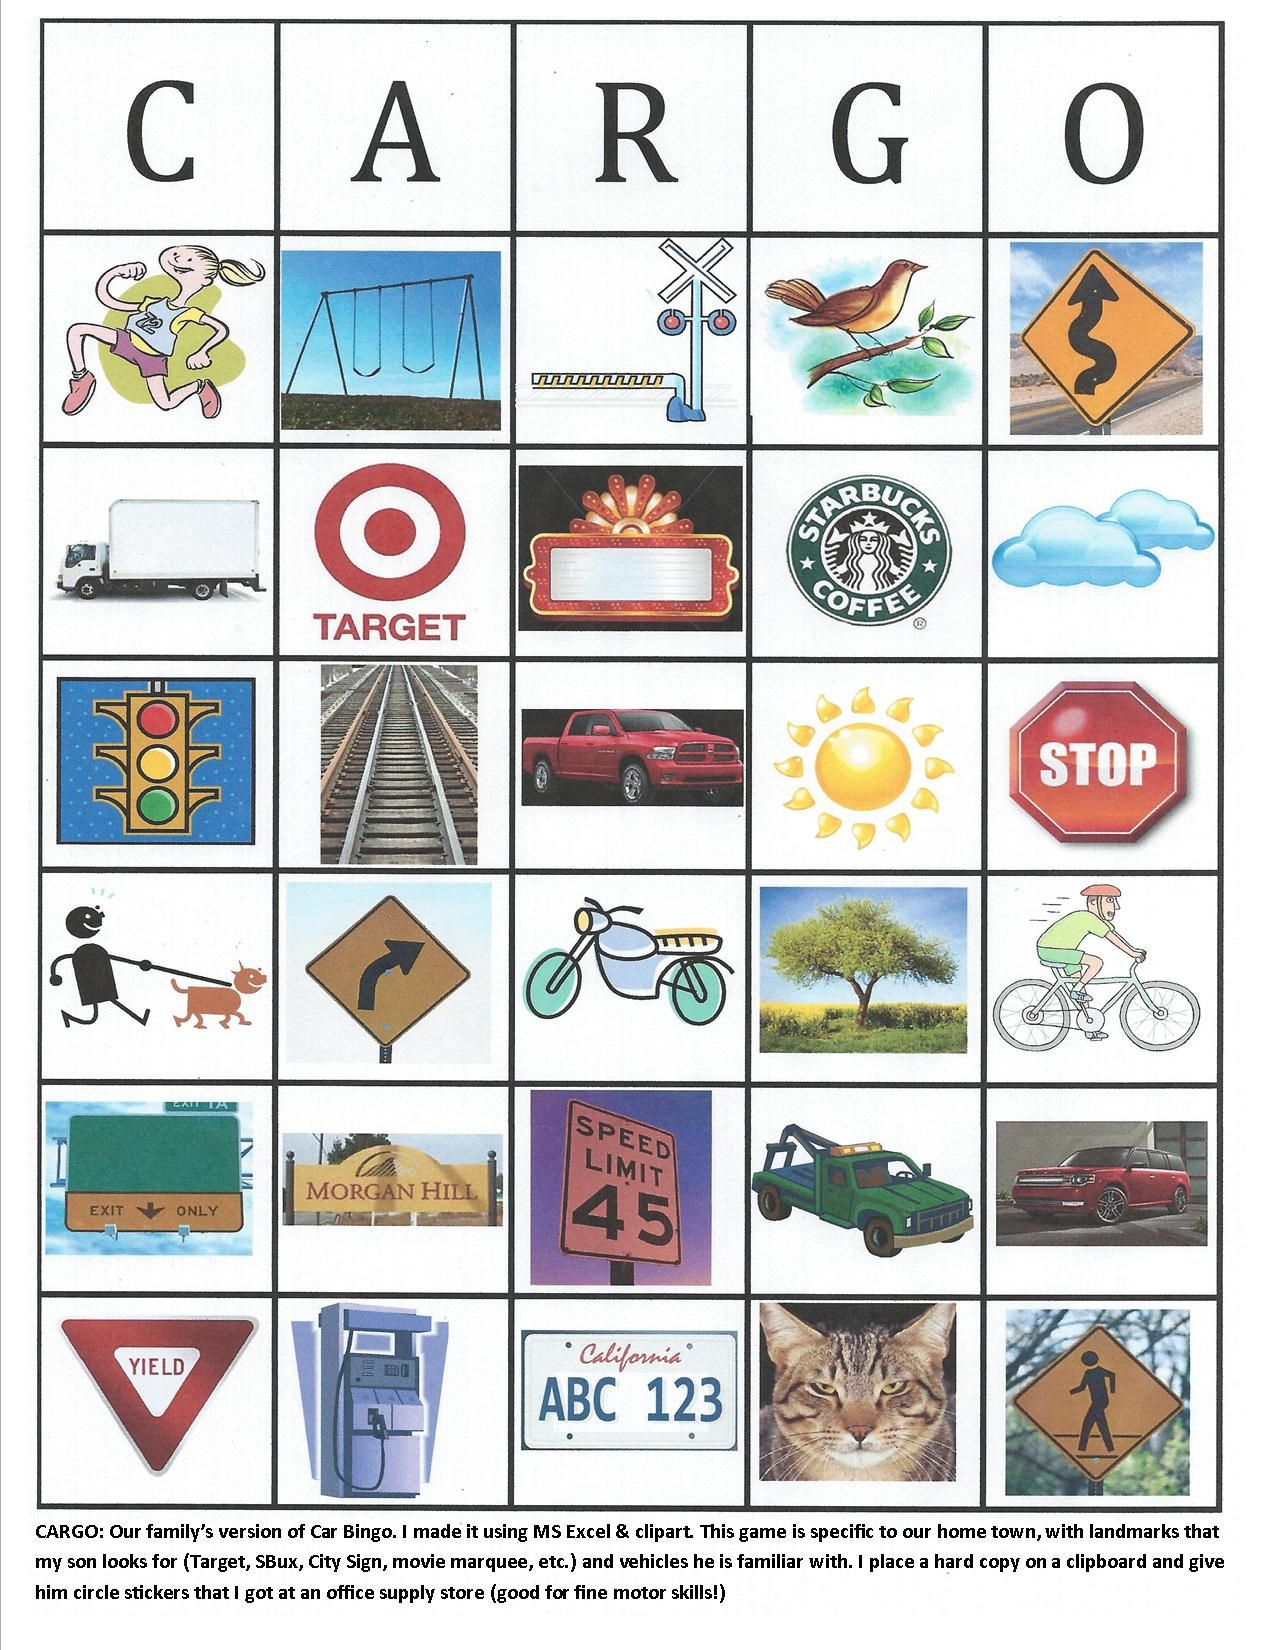 Cargo (Car Bingo) | My Road Trip, Road Trip Fun, Travel Fun